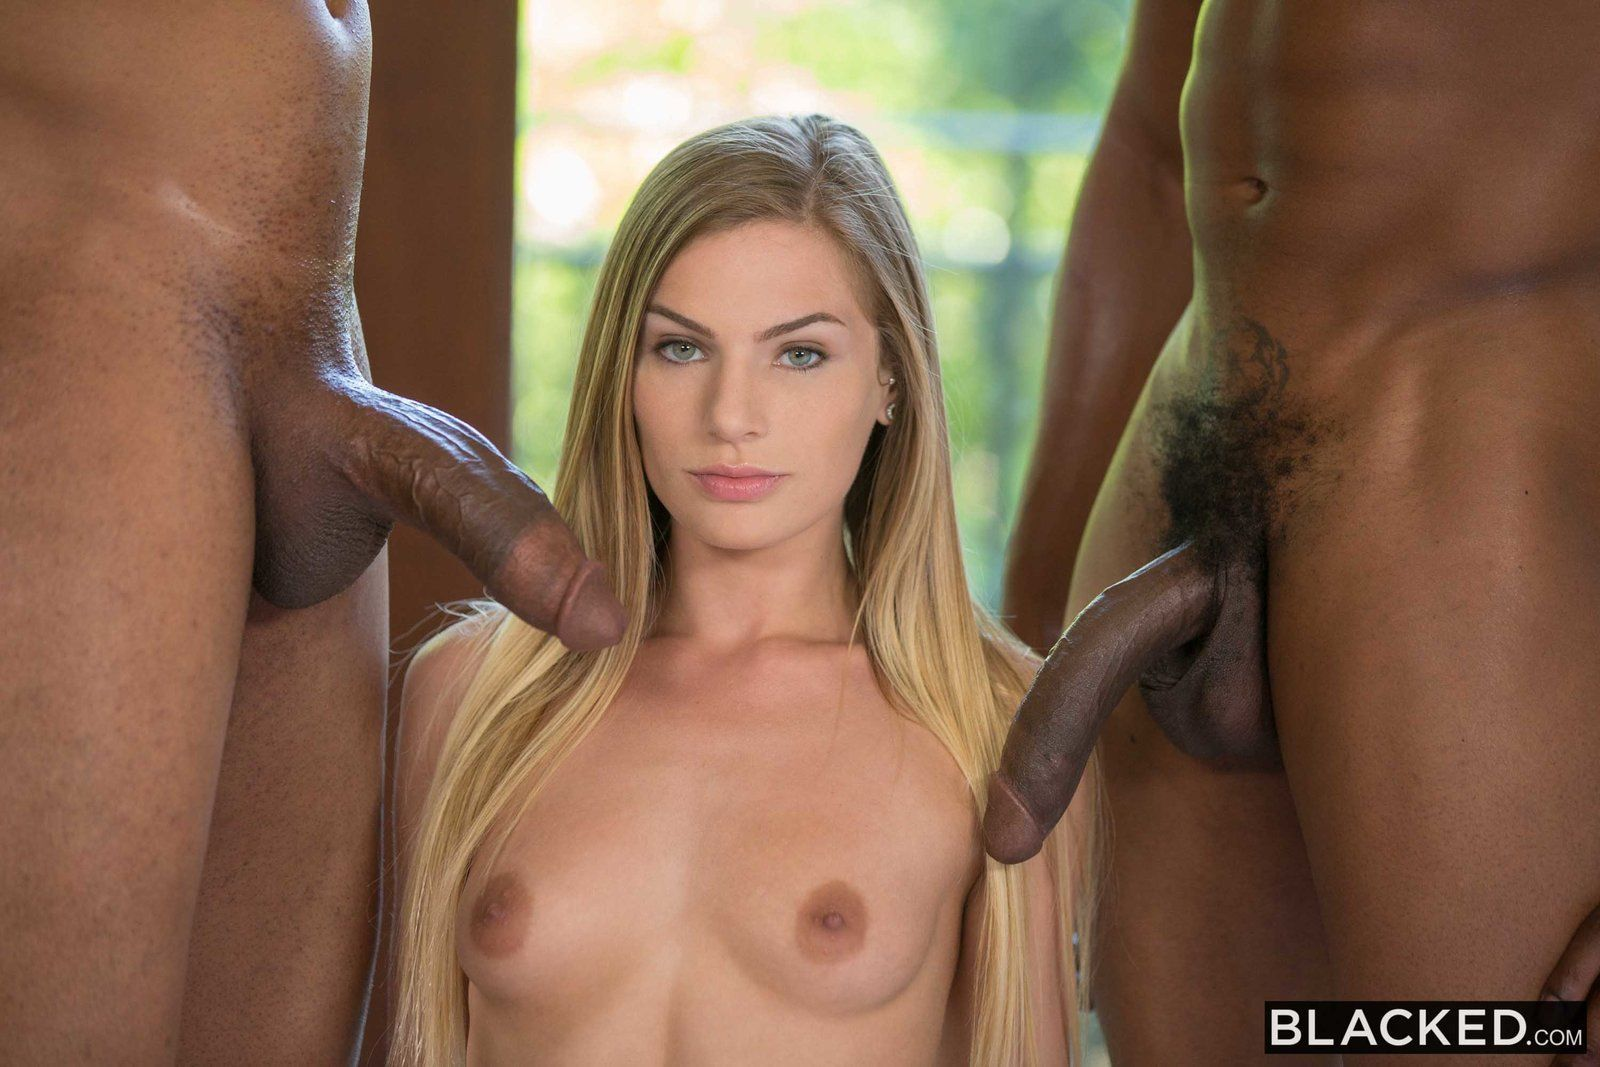 Recommend interracial blond galleries opinion you